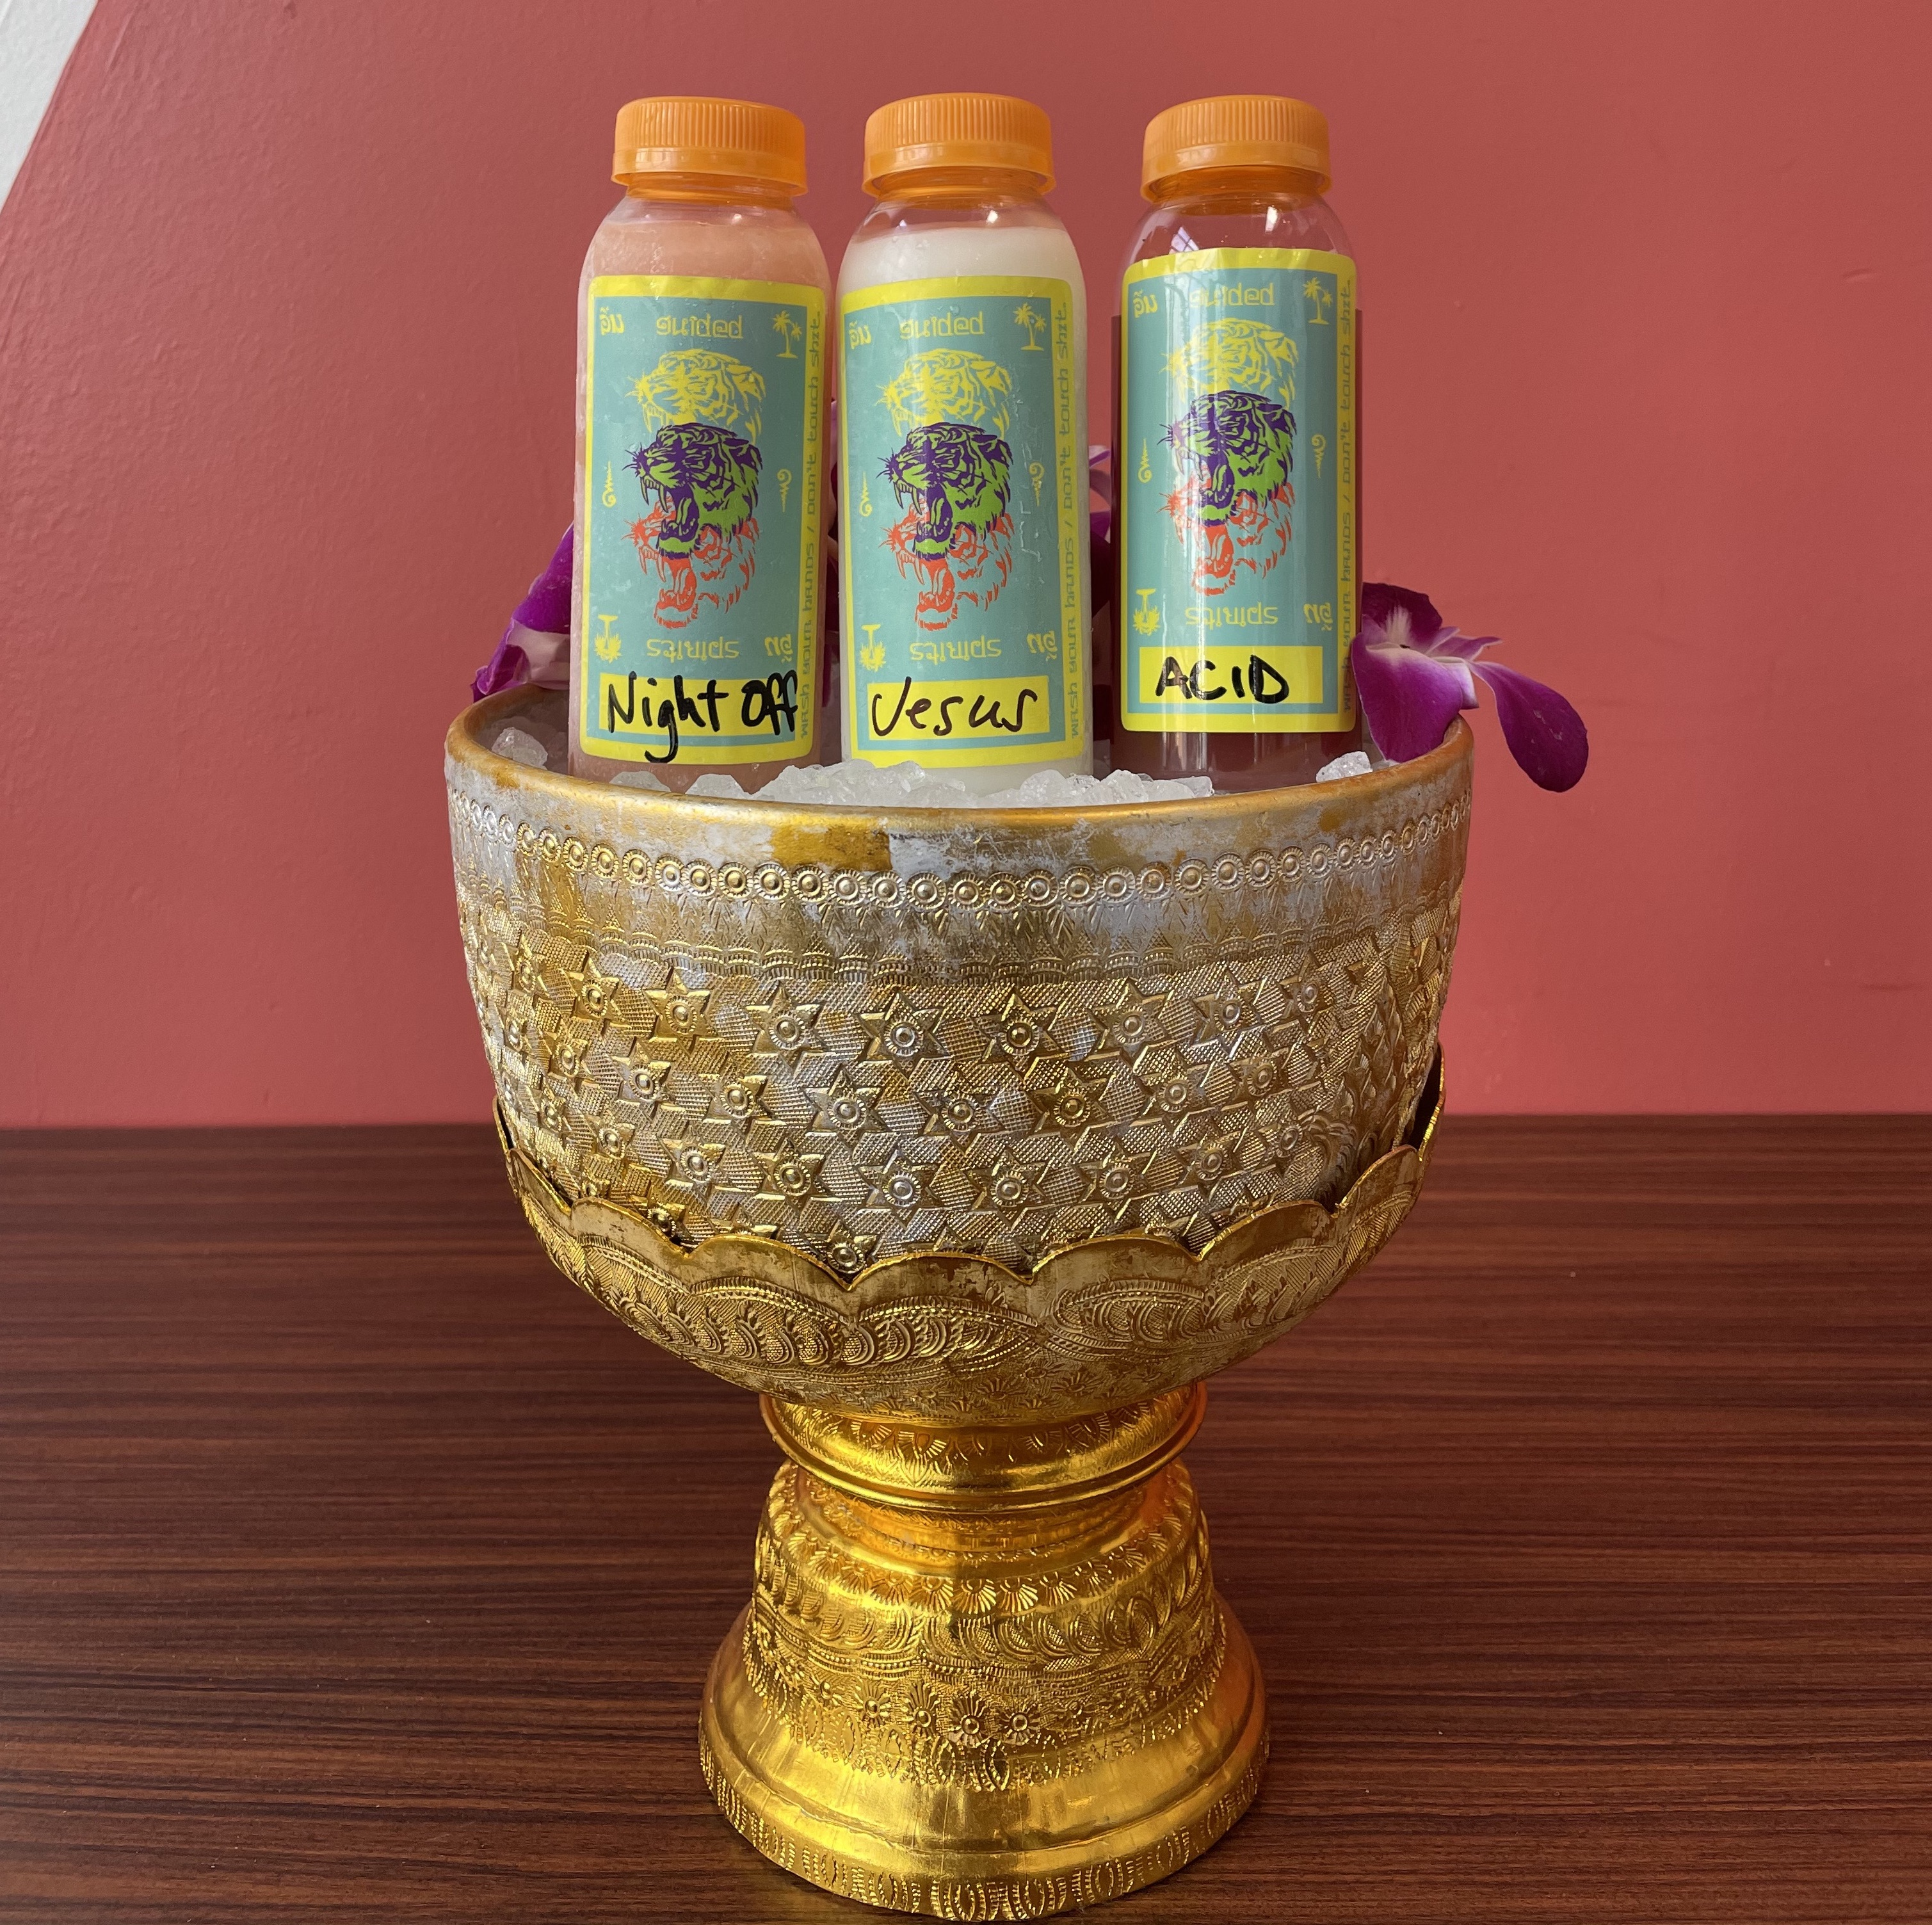 A gold bold on a wooden platform holds three bottled cocktails with labels from Eem